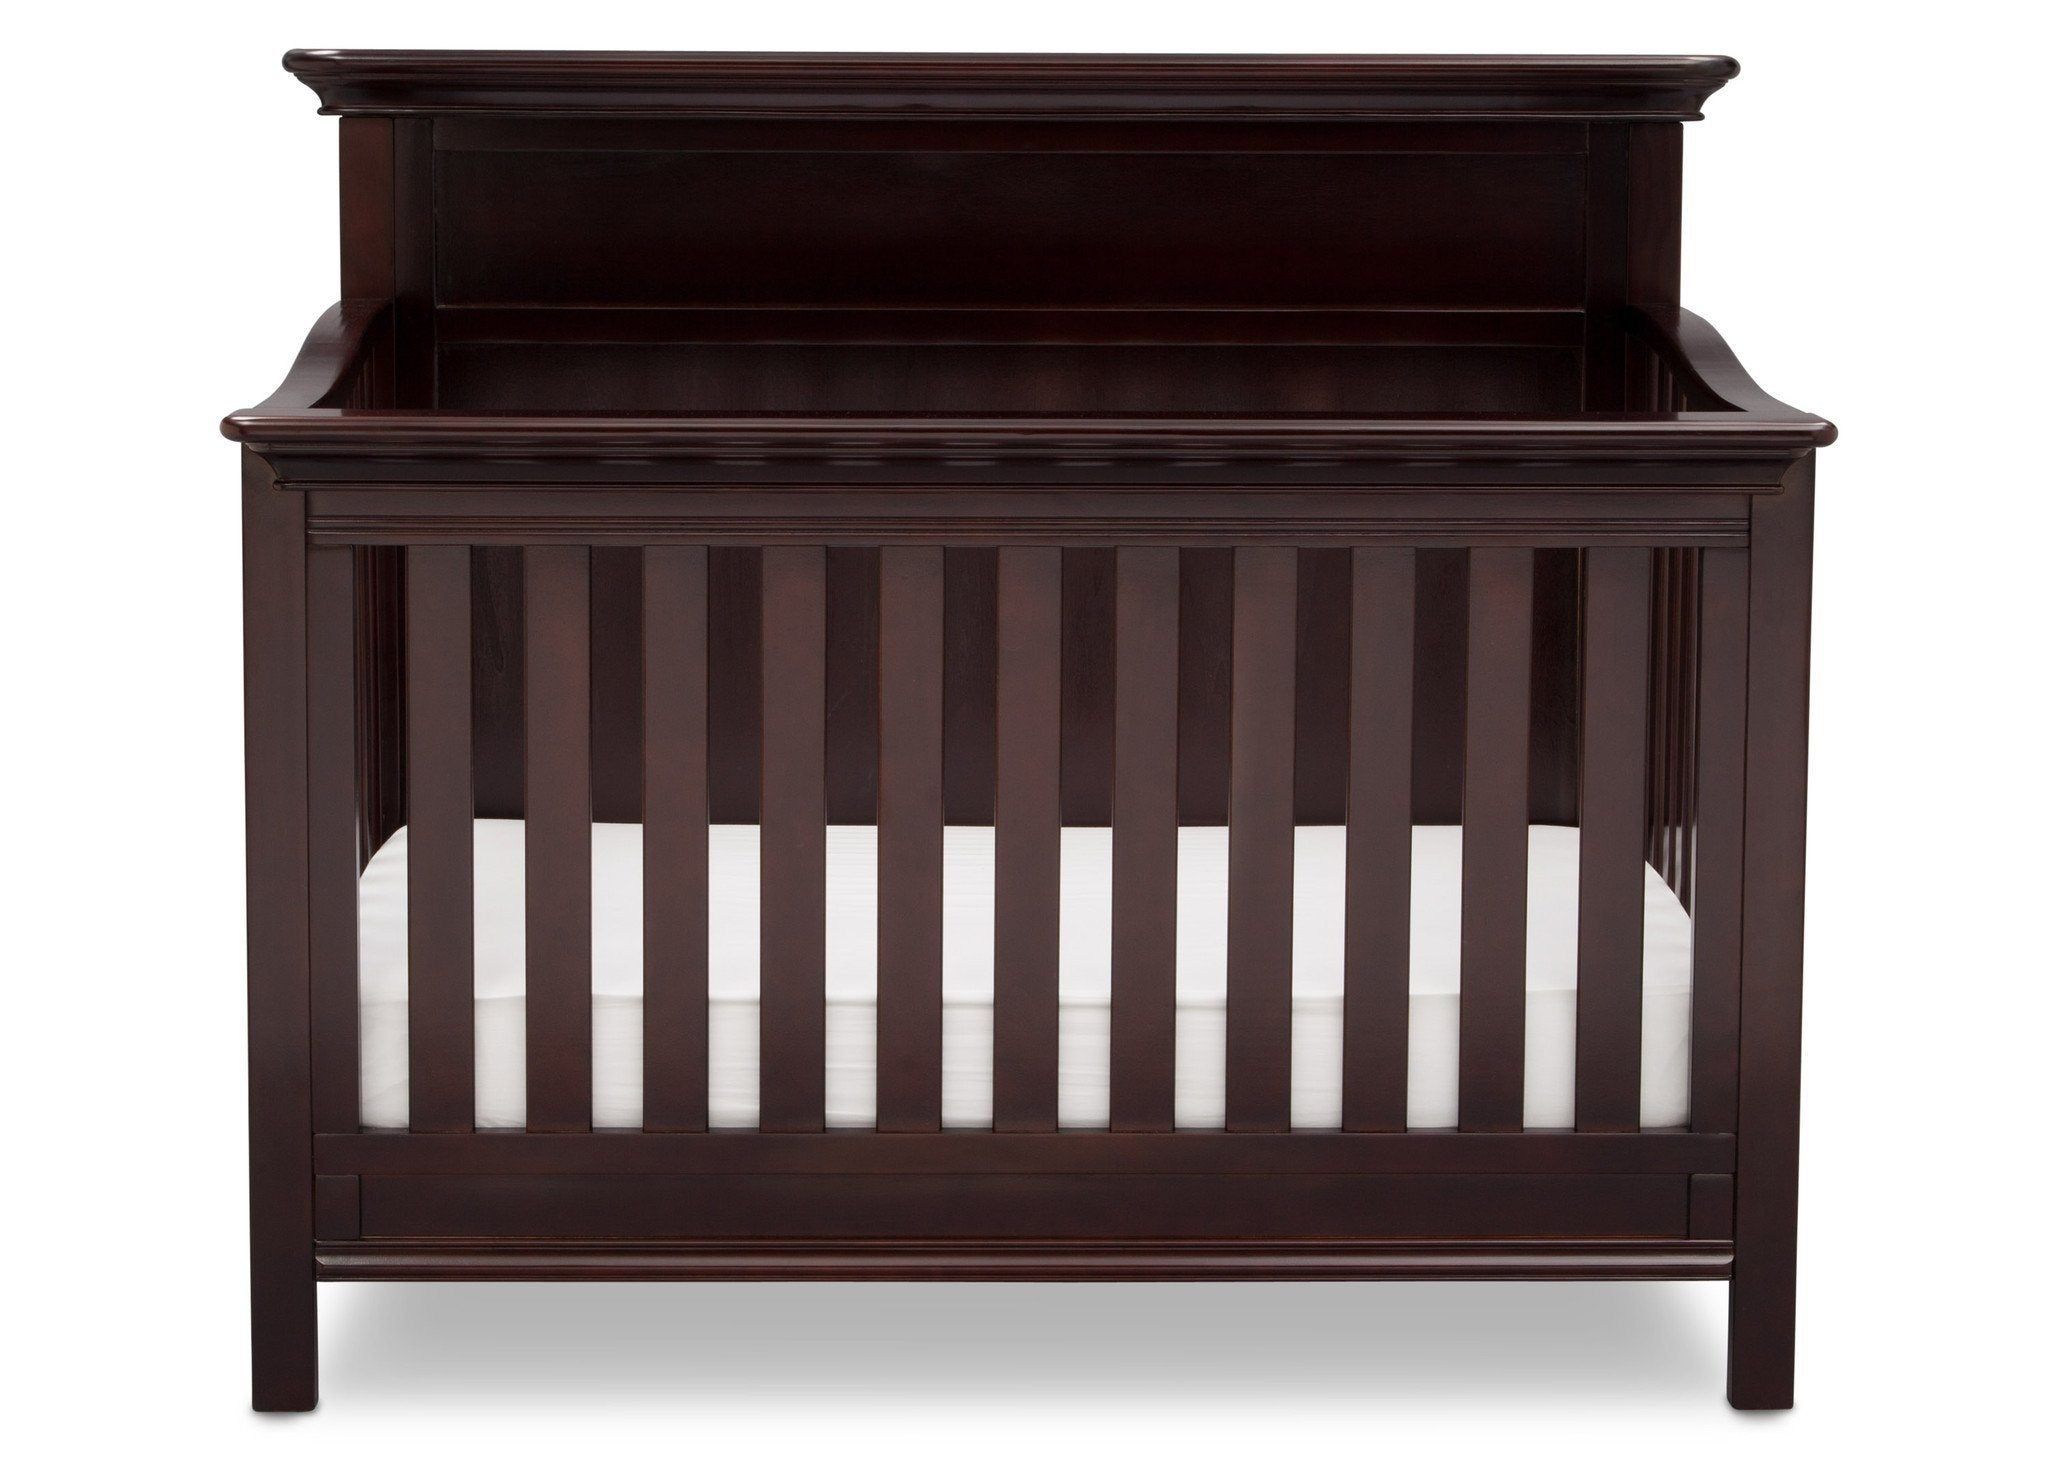 Serta Dark Chocolate (207) Fairmount 4-in-1 Crib, Front View with Crib Conversion c3c